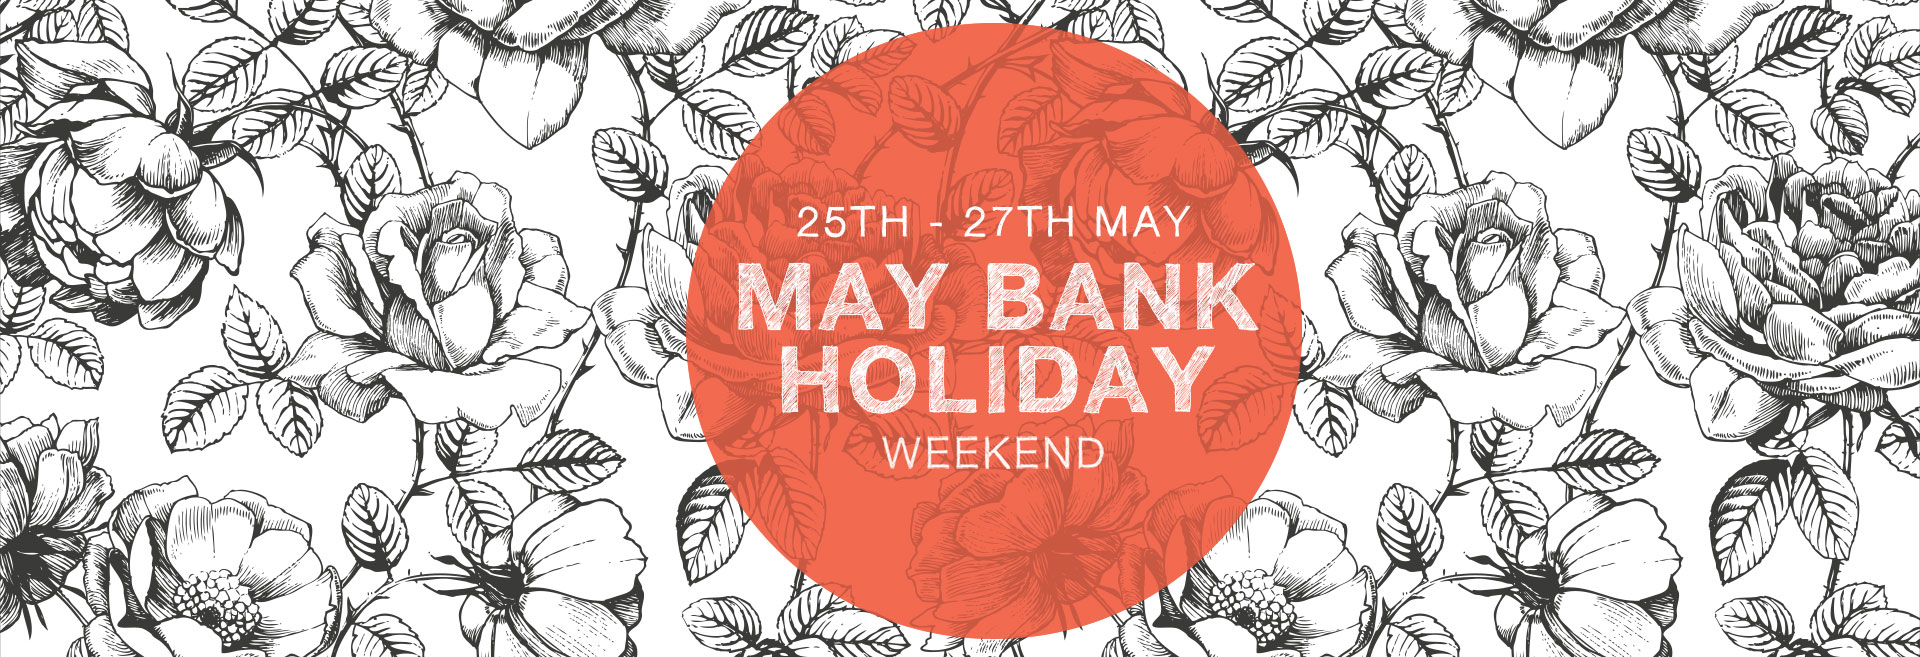 May Bank Holiday at The Eagle